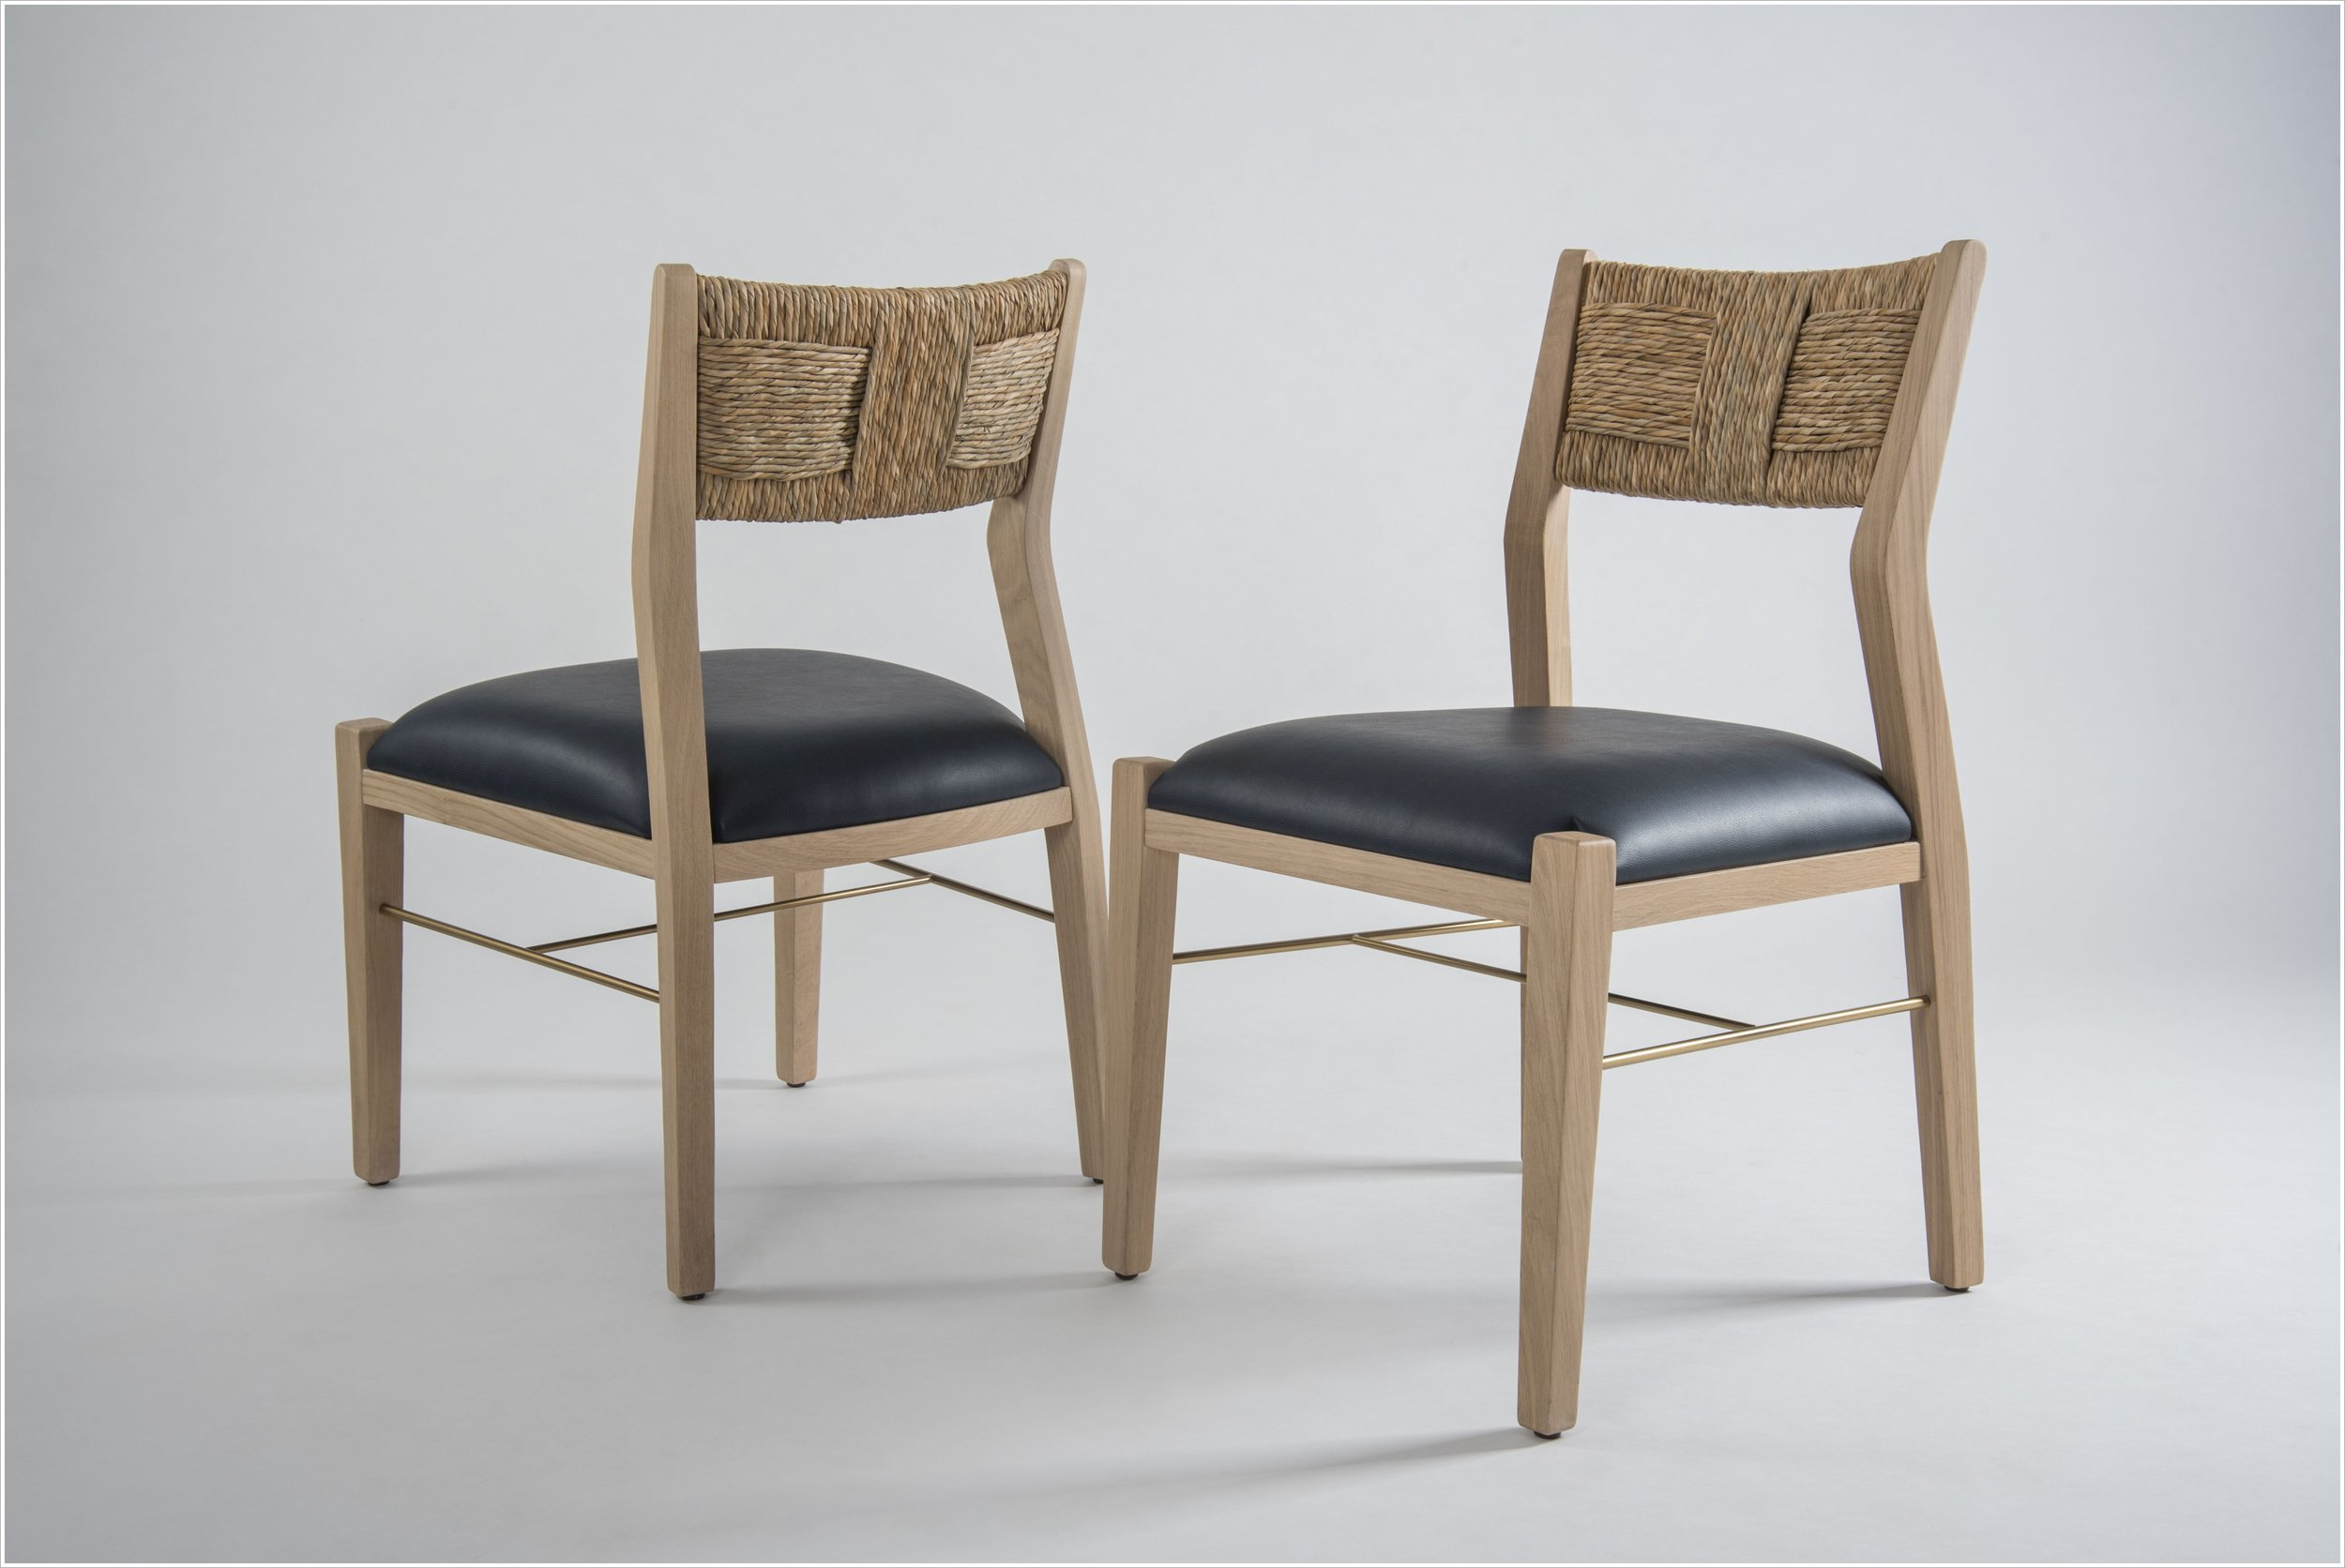 SC196 - Dining Chair with Woven Seat Back